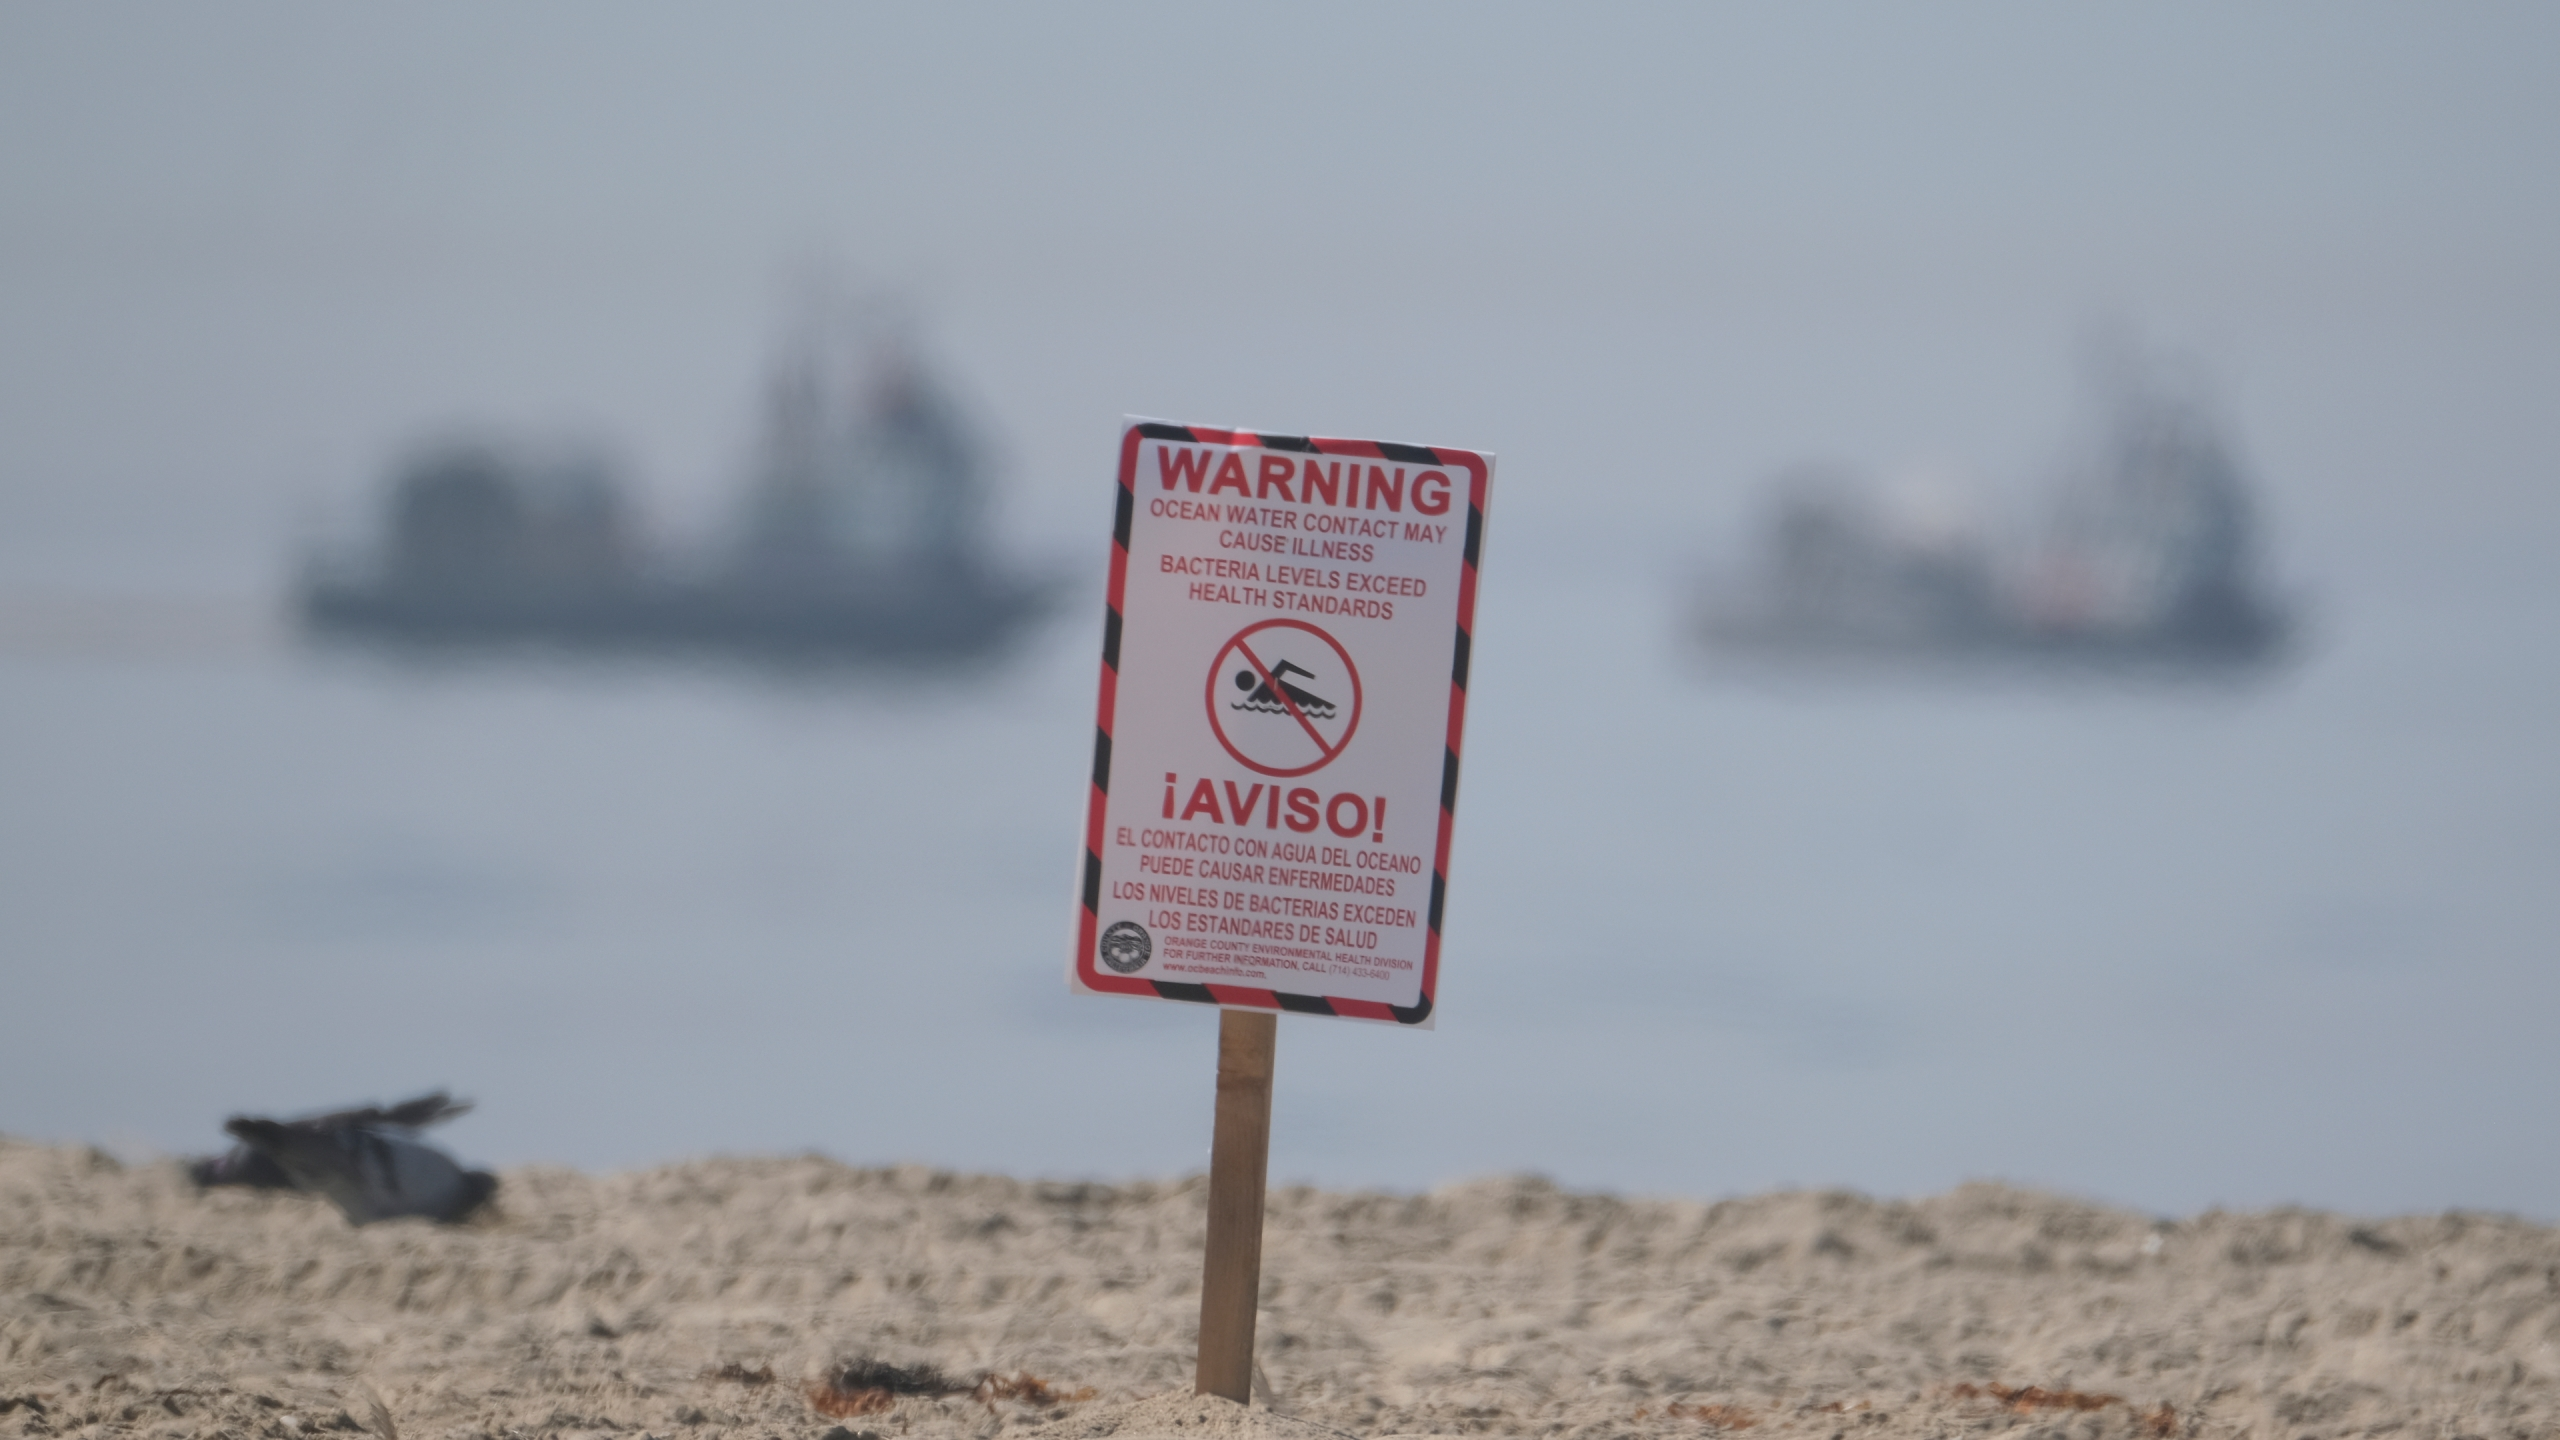 A posted sign warning about water contact may cause illness is posted by life guards after an oil spill in Huntington Beach, Calif., Sunday, Oct. 3, 2021. Vessels with the Marine Spill Response Corporation (MSRC) vessel, background, an oil spill removal organization (OSRO), deploy floating barriers around the largest oil spills in recent Southern California history fouled popular beaches and killed wildlife while crews scrambled Sunday to contain the crude before it spread further into protected wetlands. (AP Photo/Ringo H.W. Chiu)